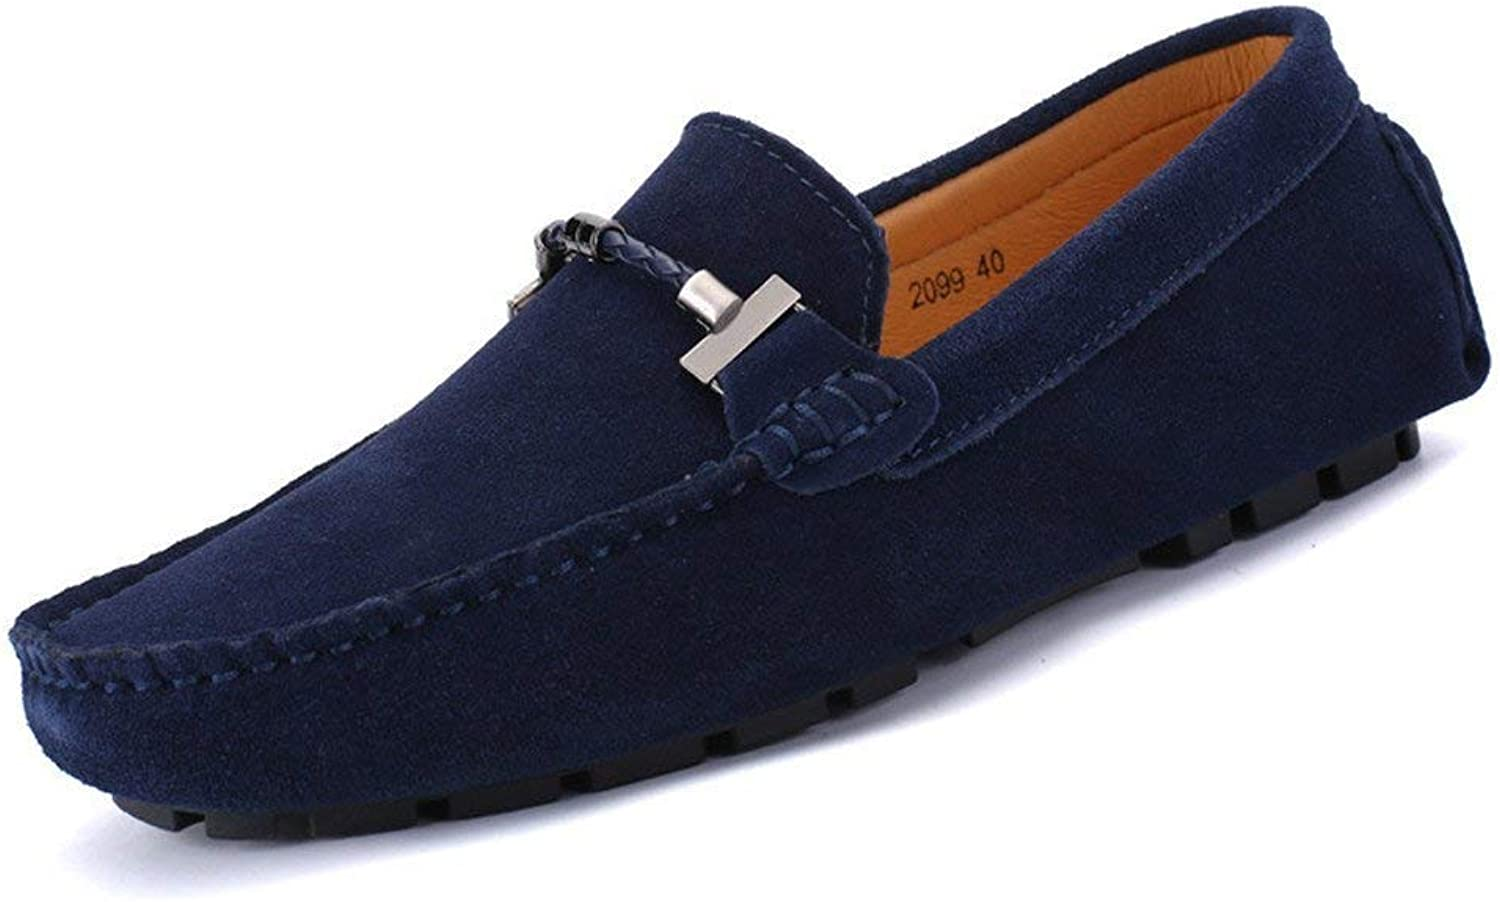 Hhgold Men's Moccasins shoes, Men Driving Low-Top Loafers Handmade Seam Suede Genuine Leather Penny Boot Moccasins up to size 47 EU (color  Navy, Size  44 EU) (color   As shown, Size   One size)